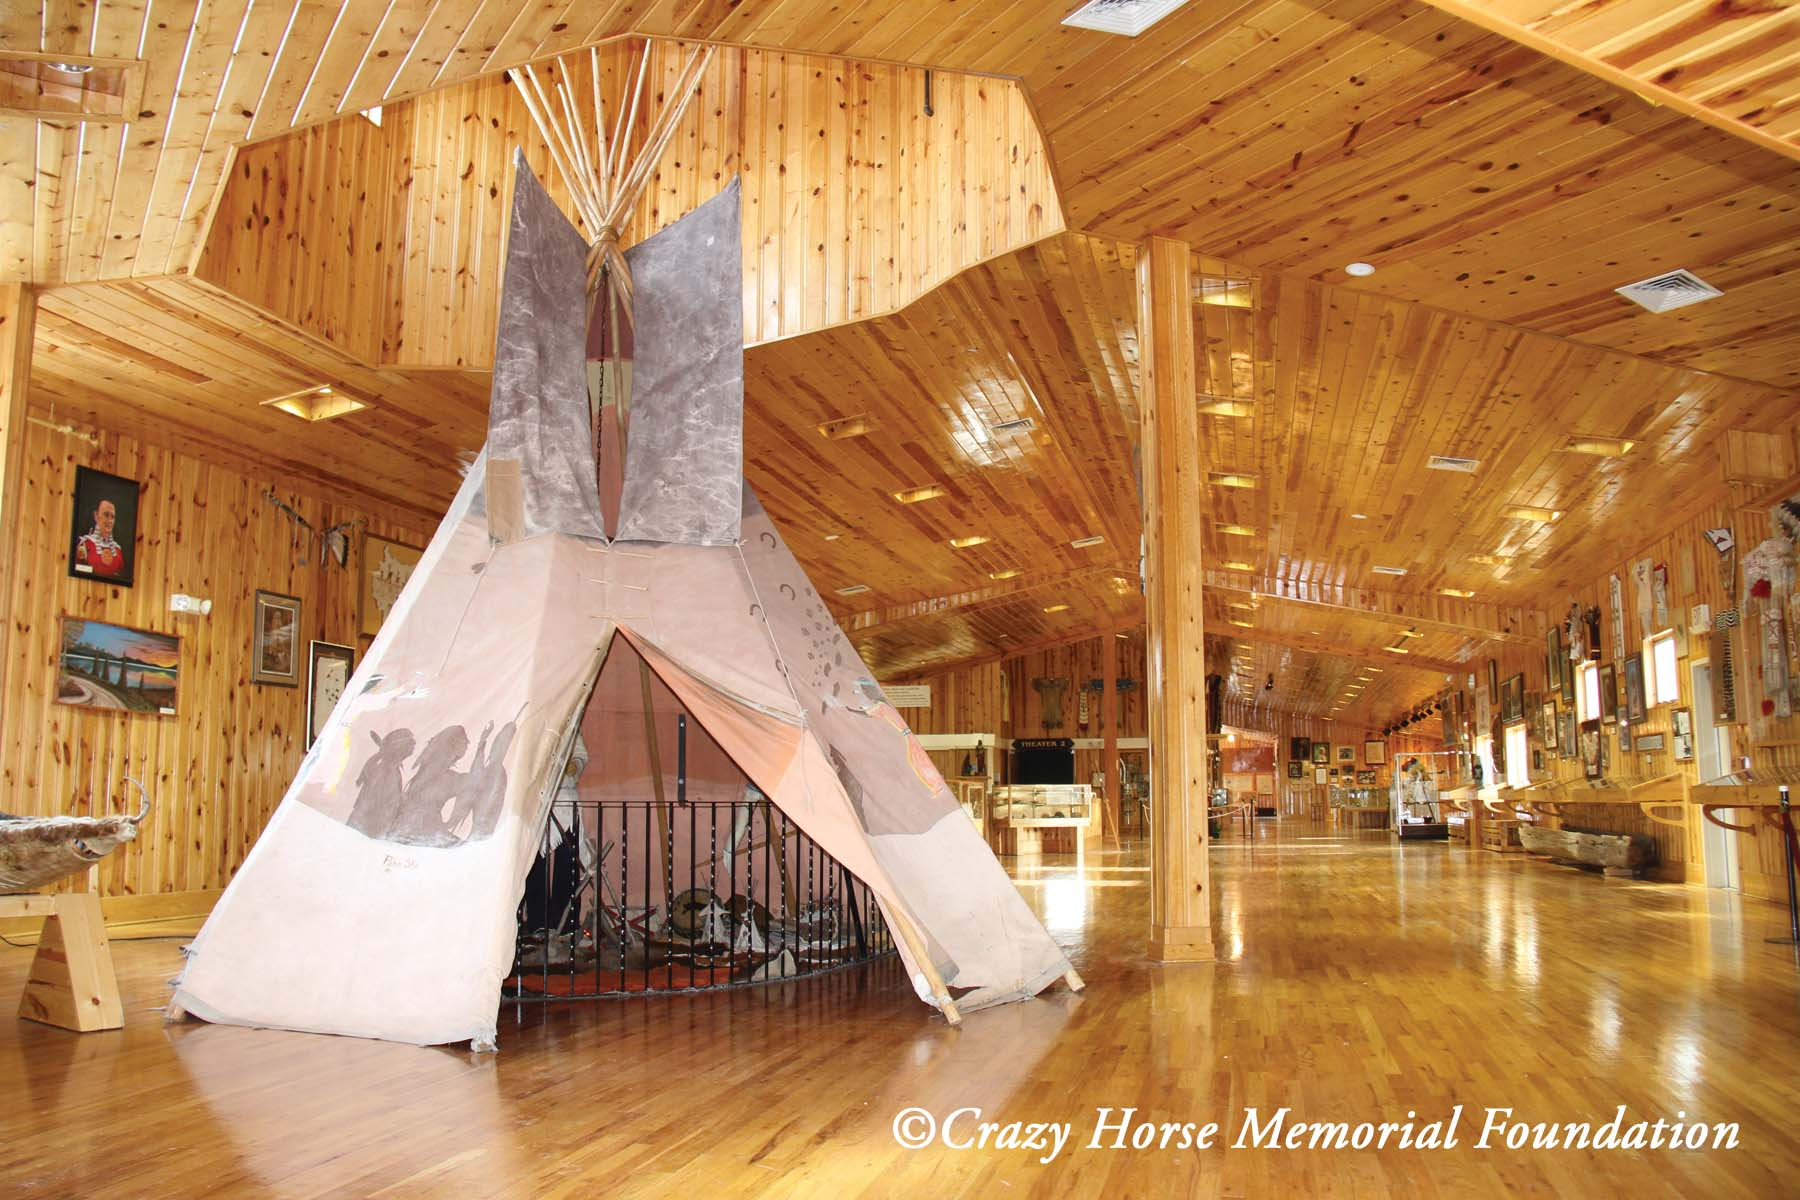 Native Sun News: Lakota artist's tipi on display at Crazy Horse Memorial